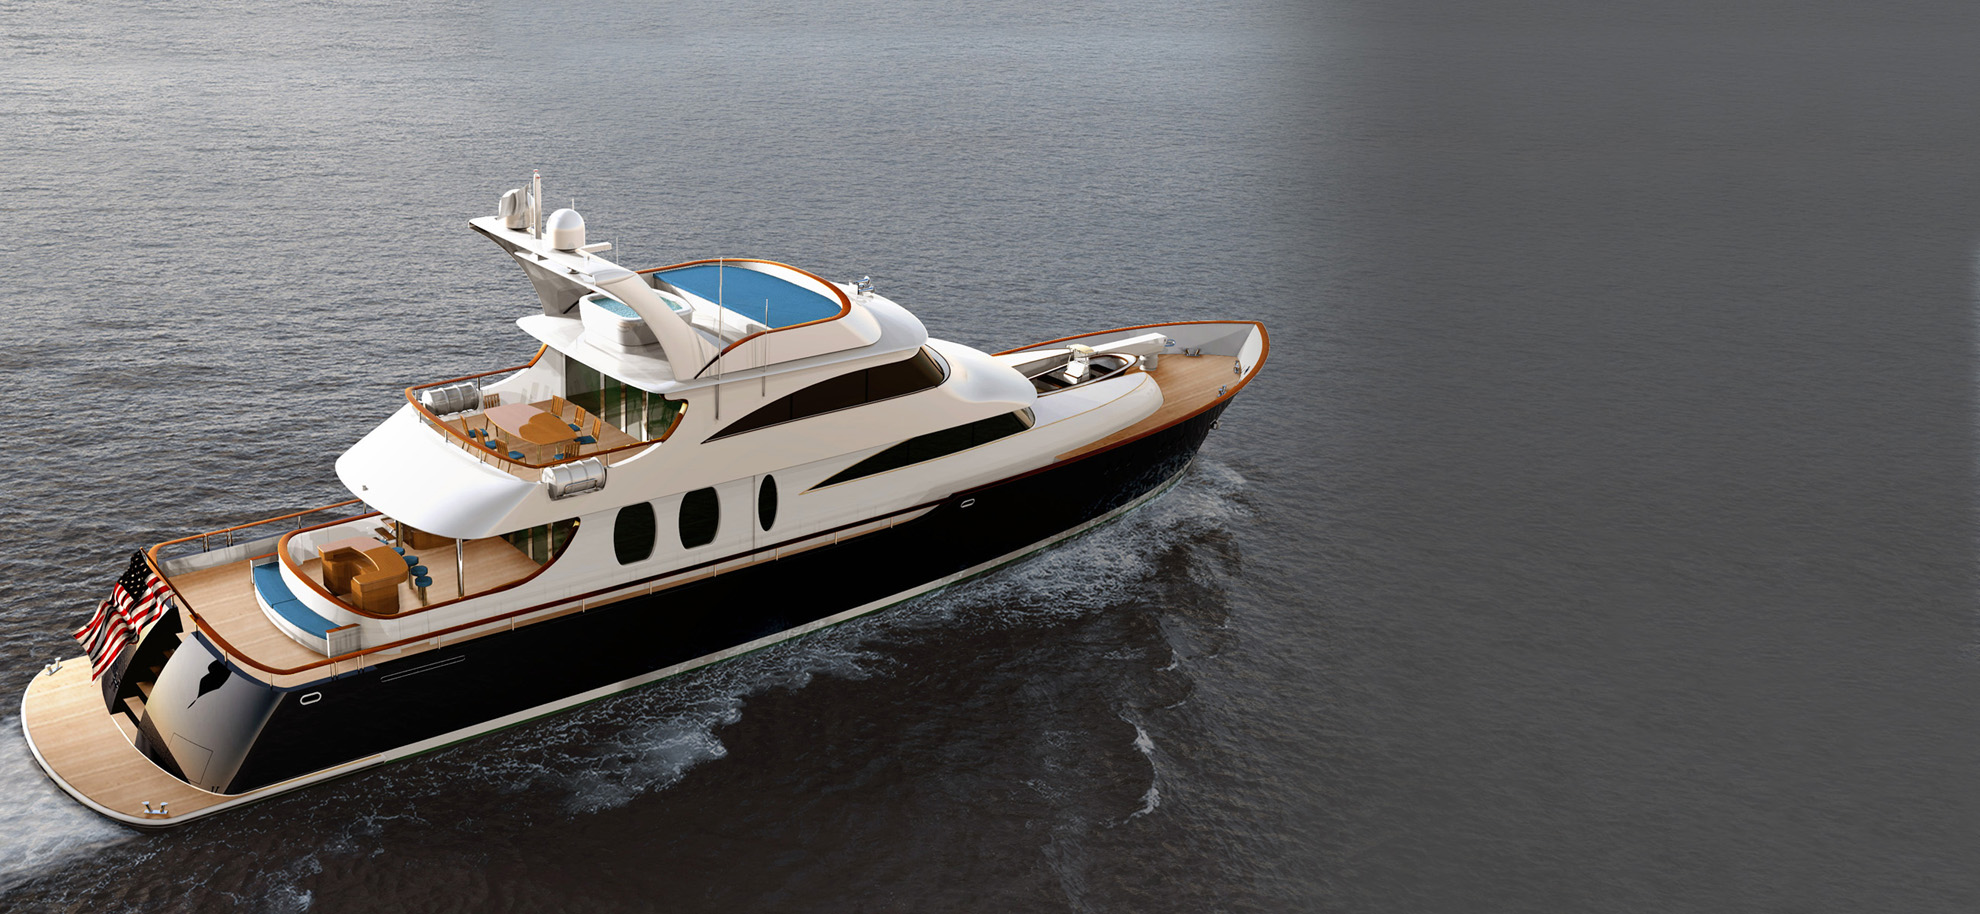 DAF-Renderings-125ft-Motor-Yacht-Exterior-Stretch1